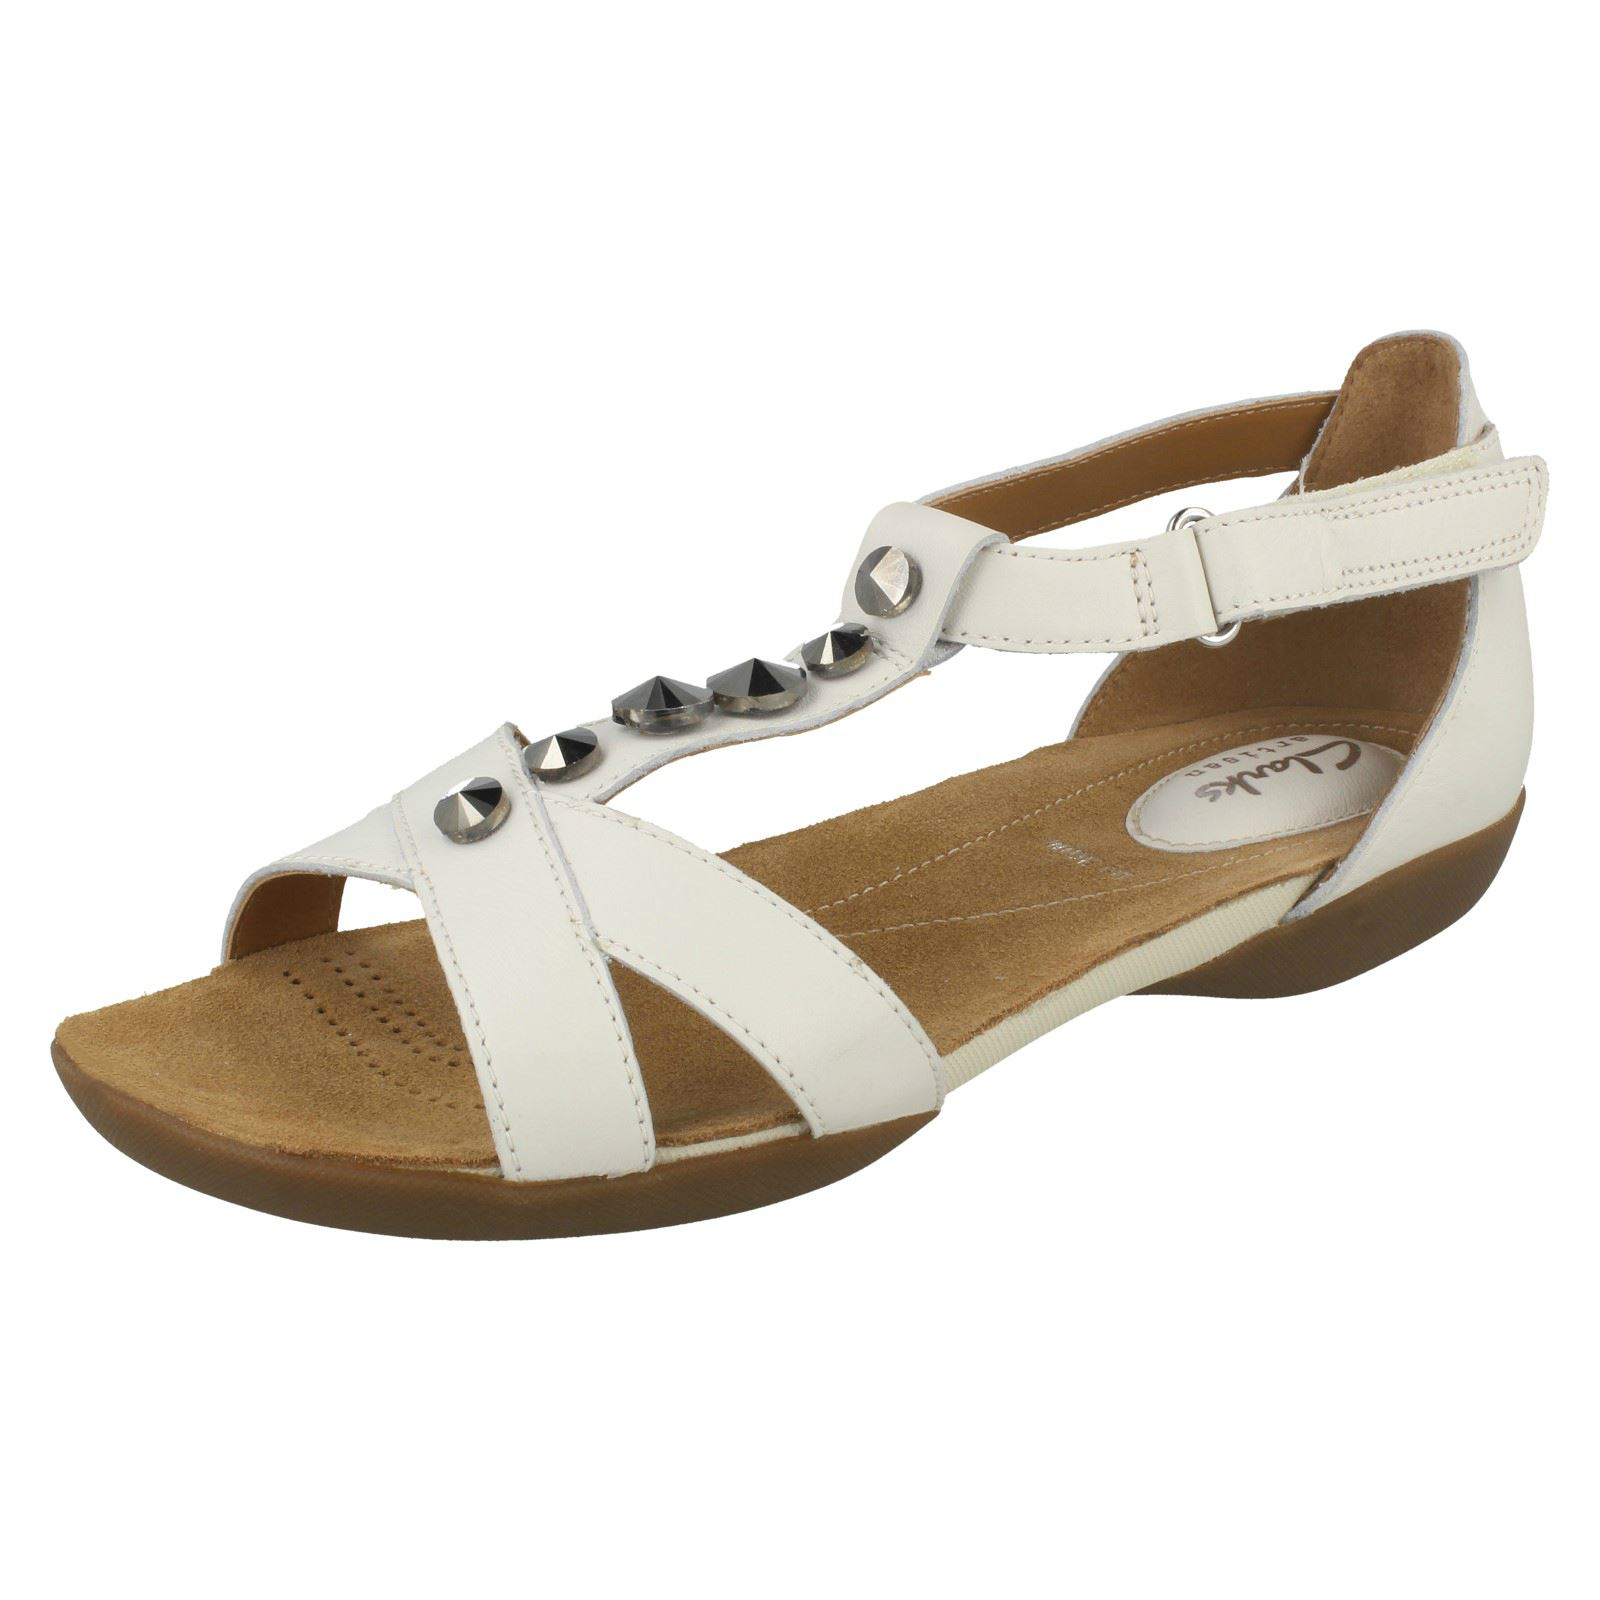 7c2ab5a82 Clarks Ladies T-Bar Flat Sandals Raffi Scent